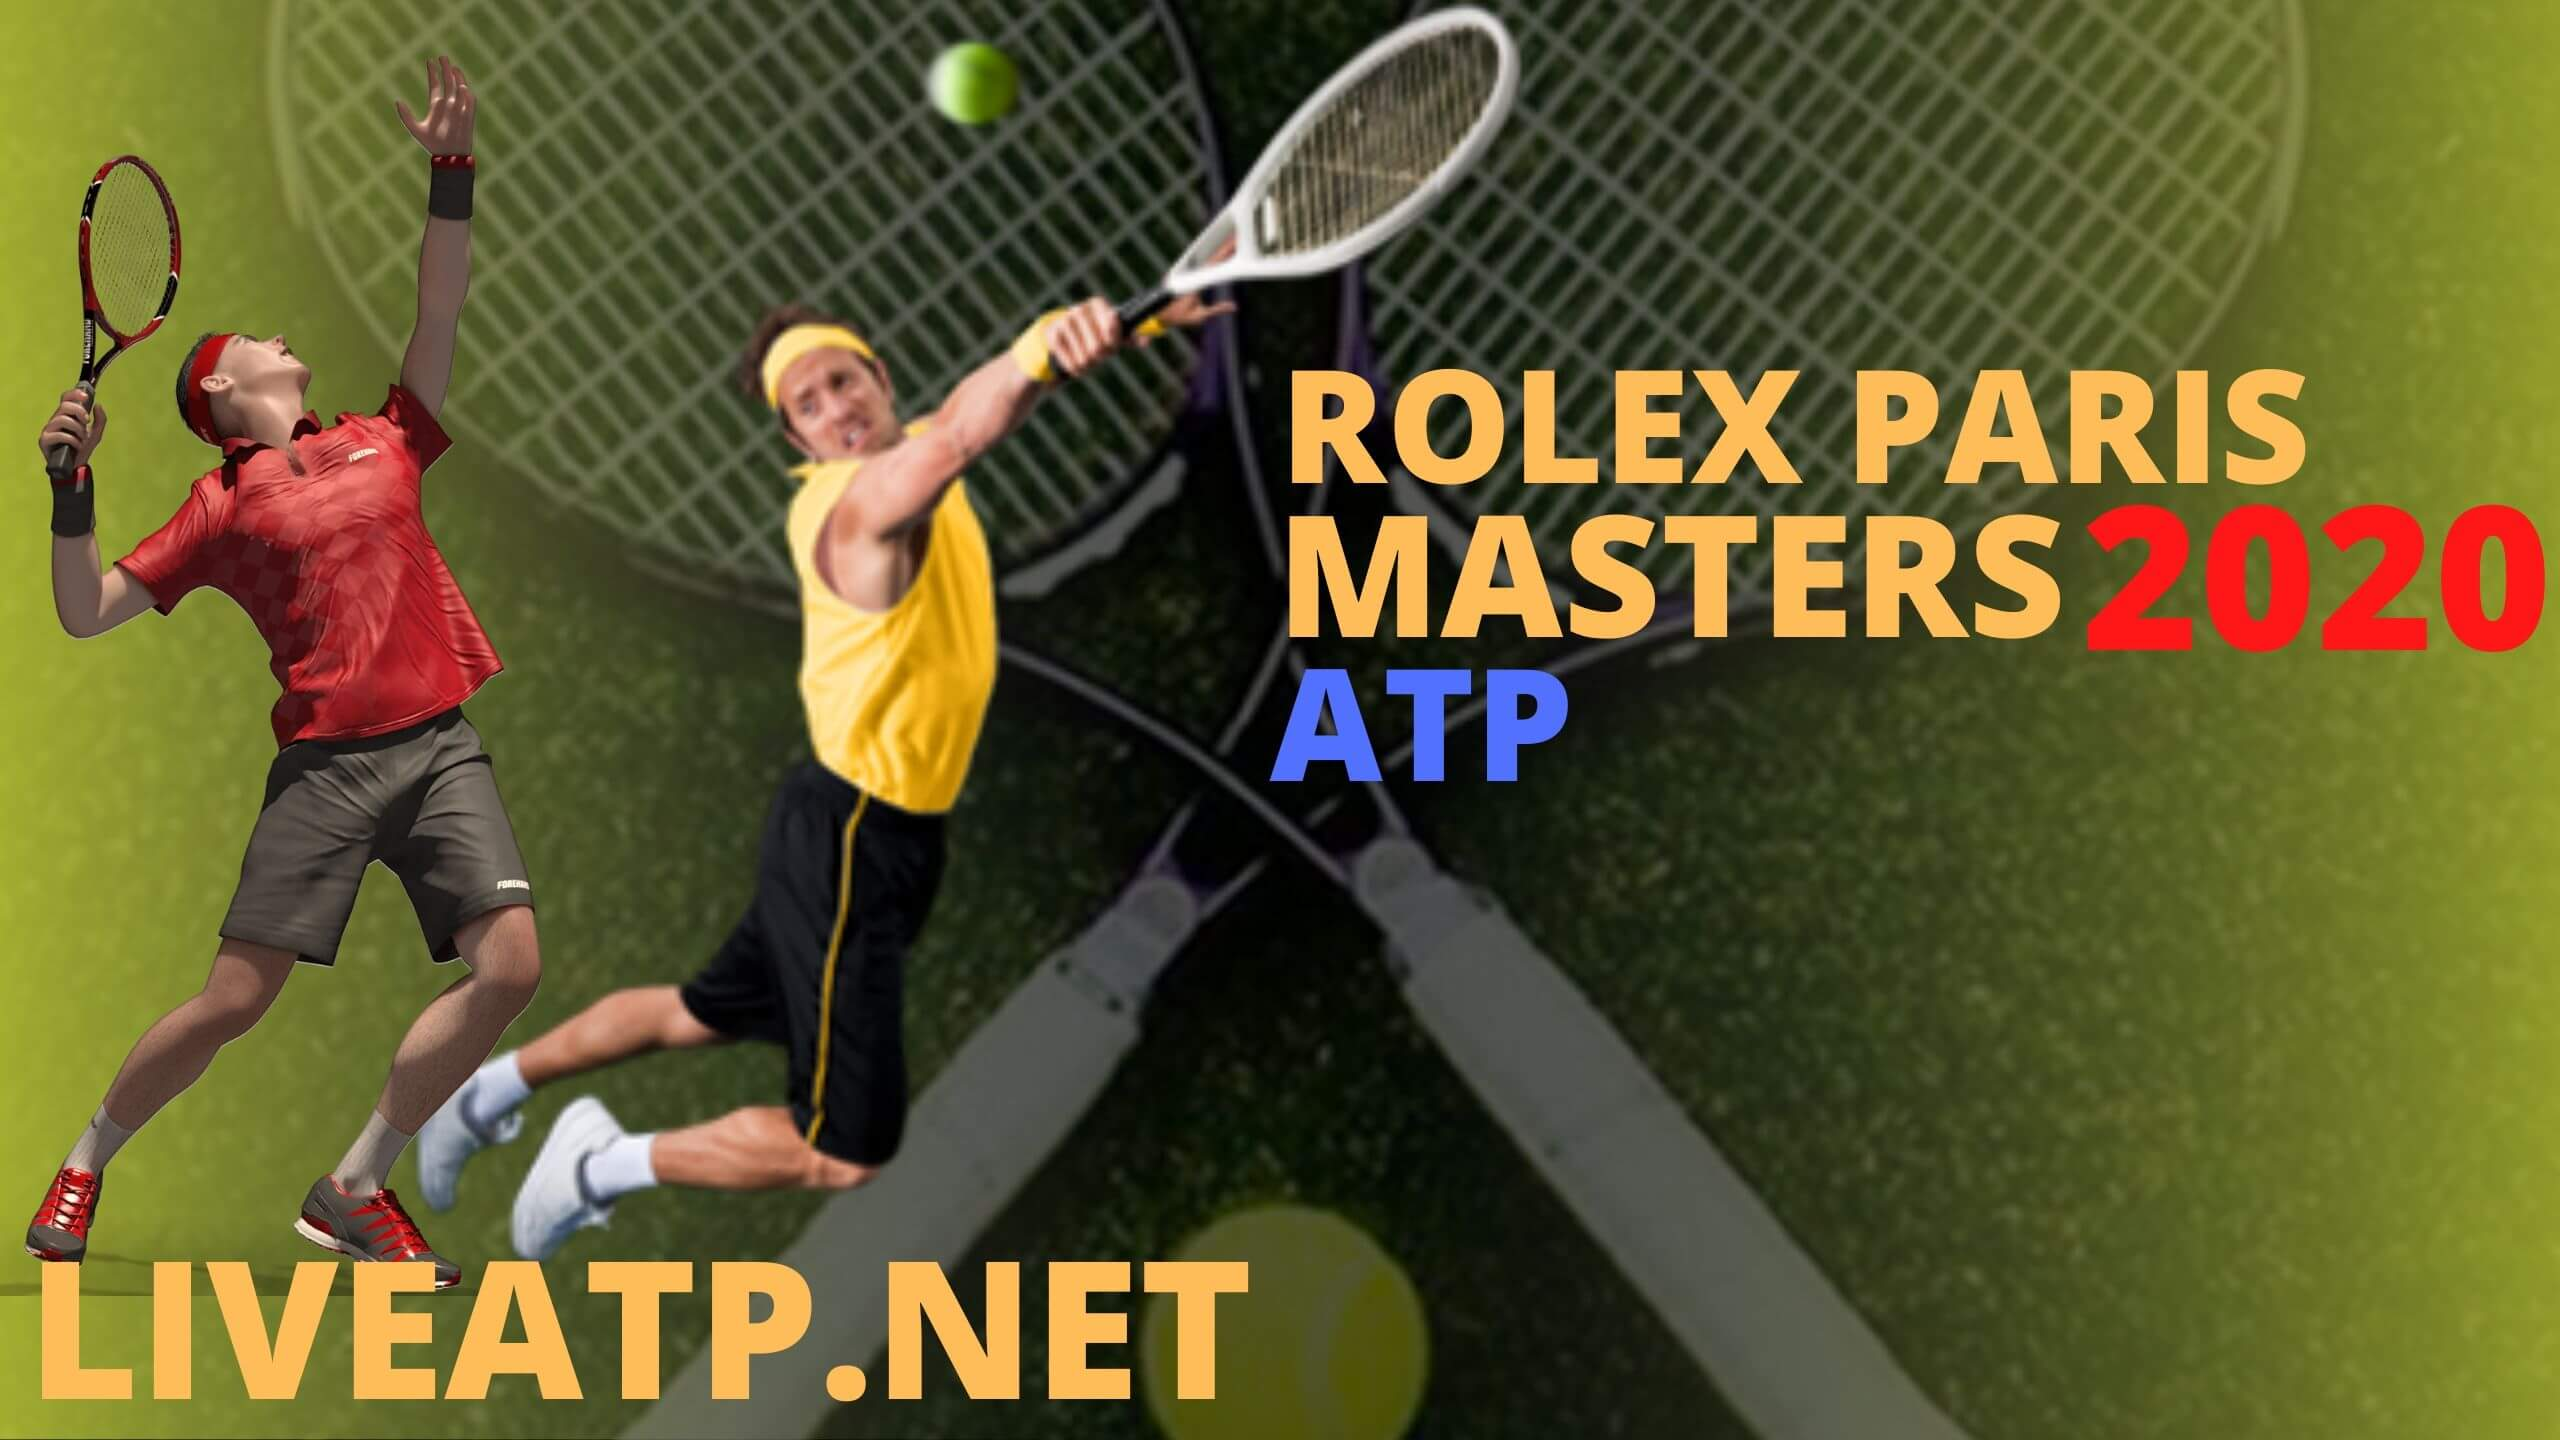 Rolex Paris Masters Live Stream 2020 | Day 1